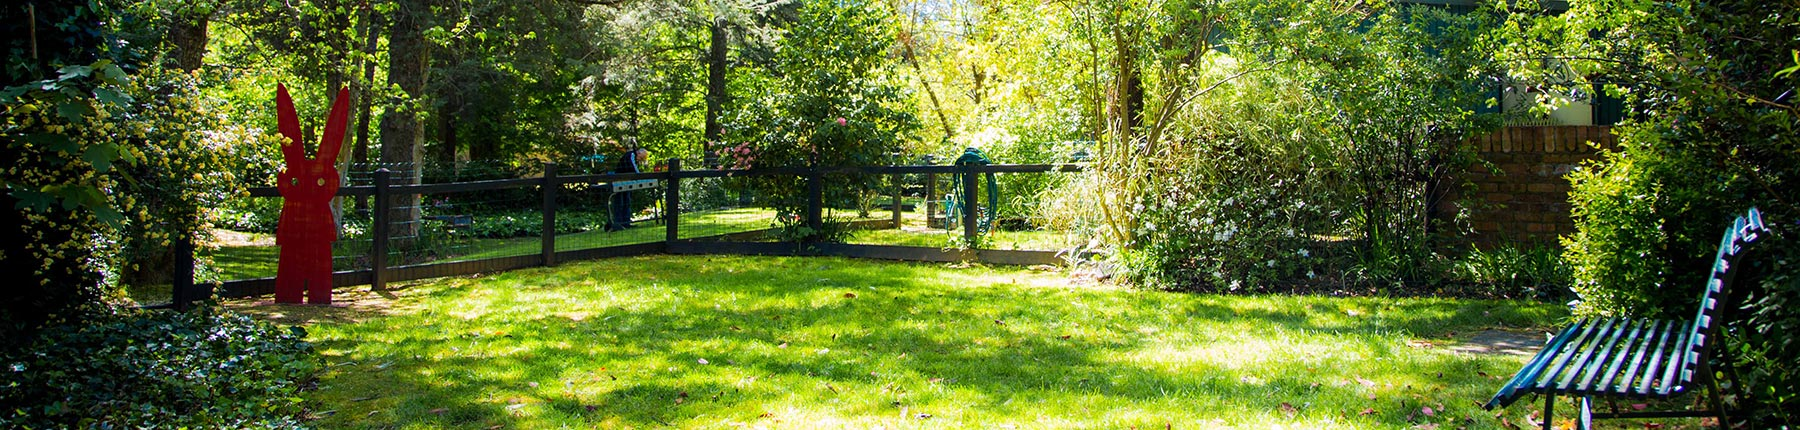 10Private-peaceful-FENCED-garden-for-each-cottage.jpg